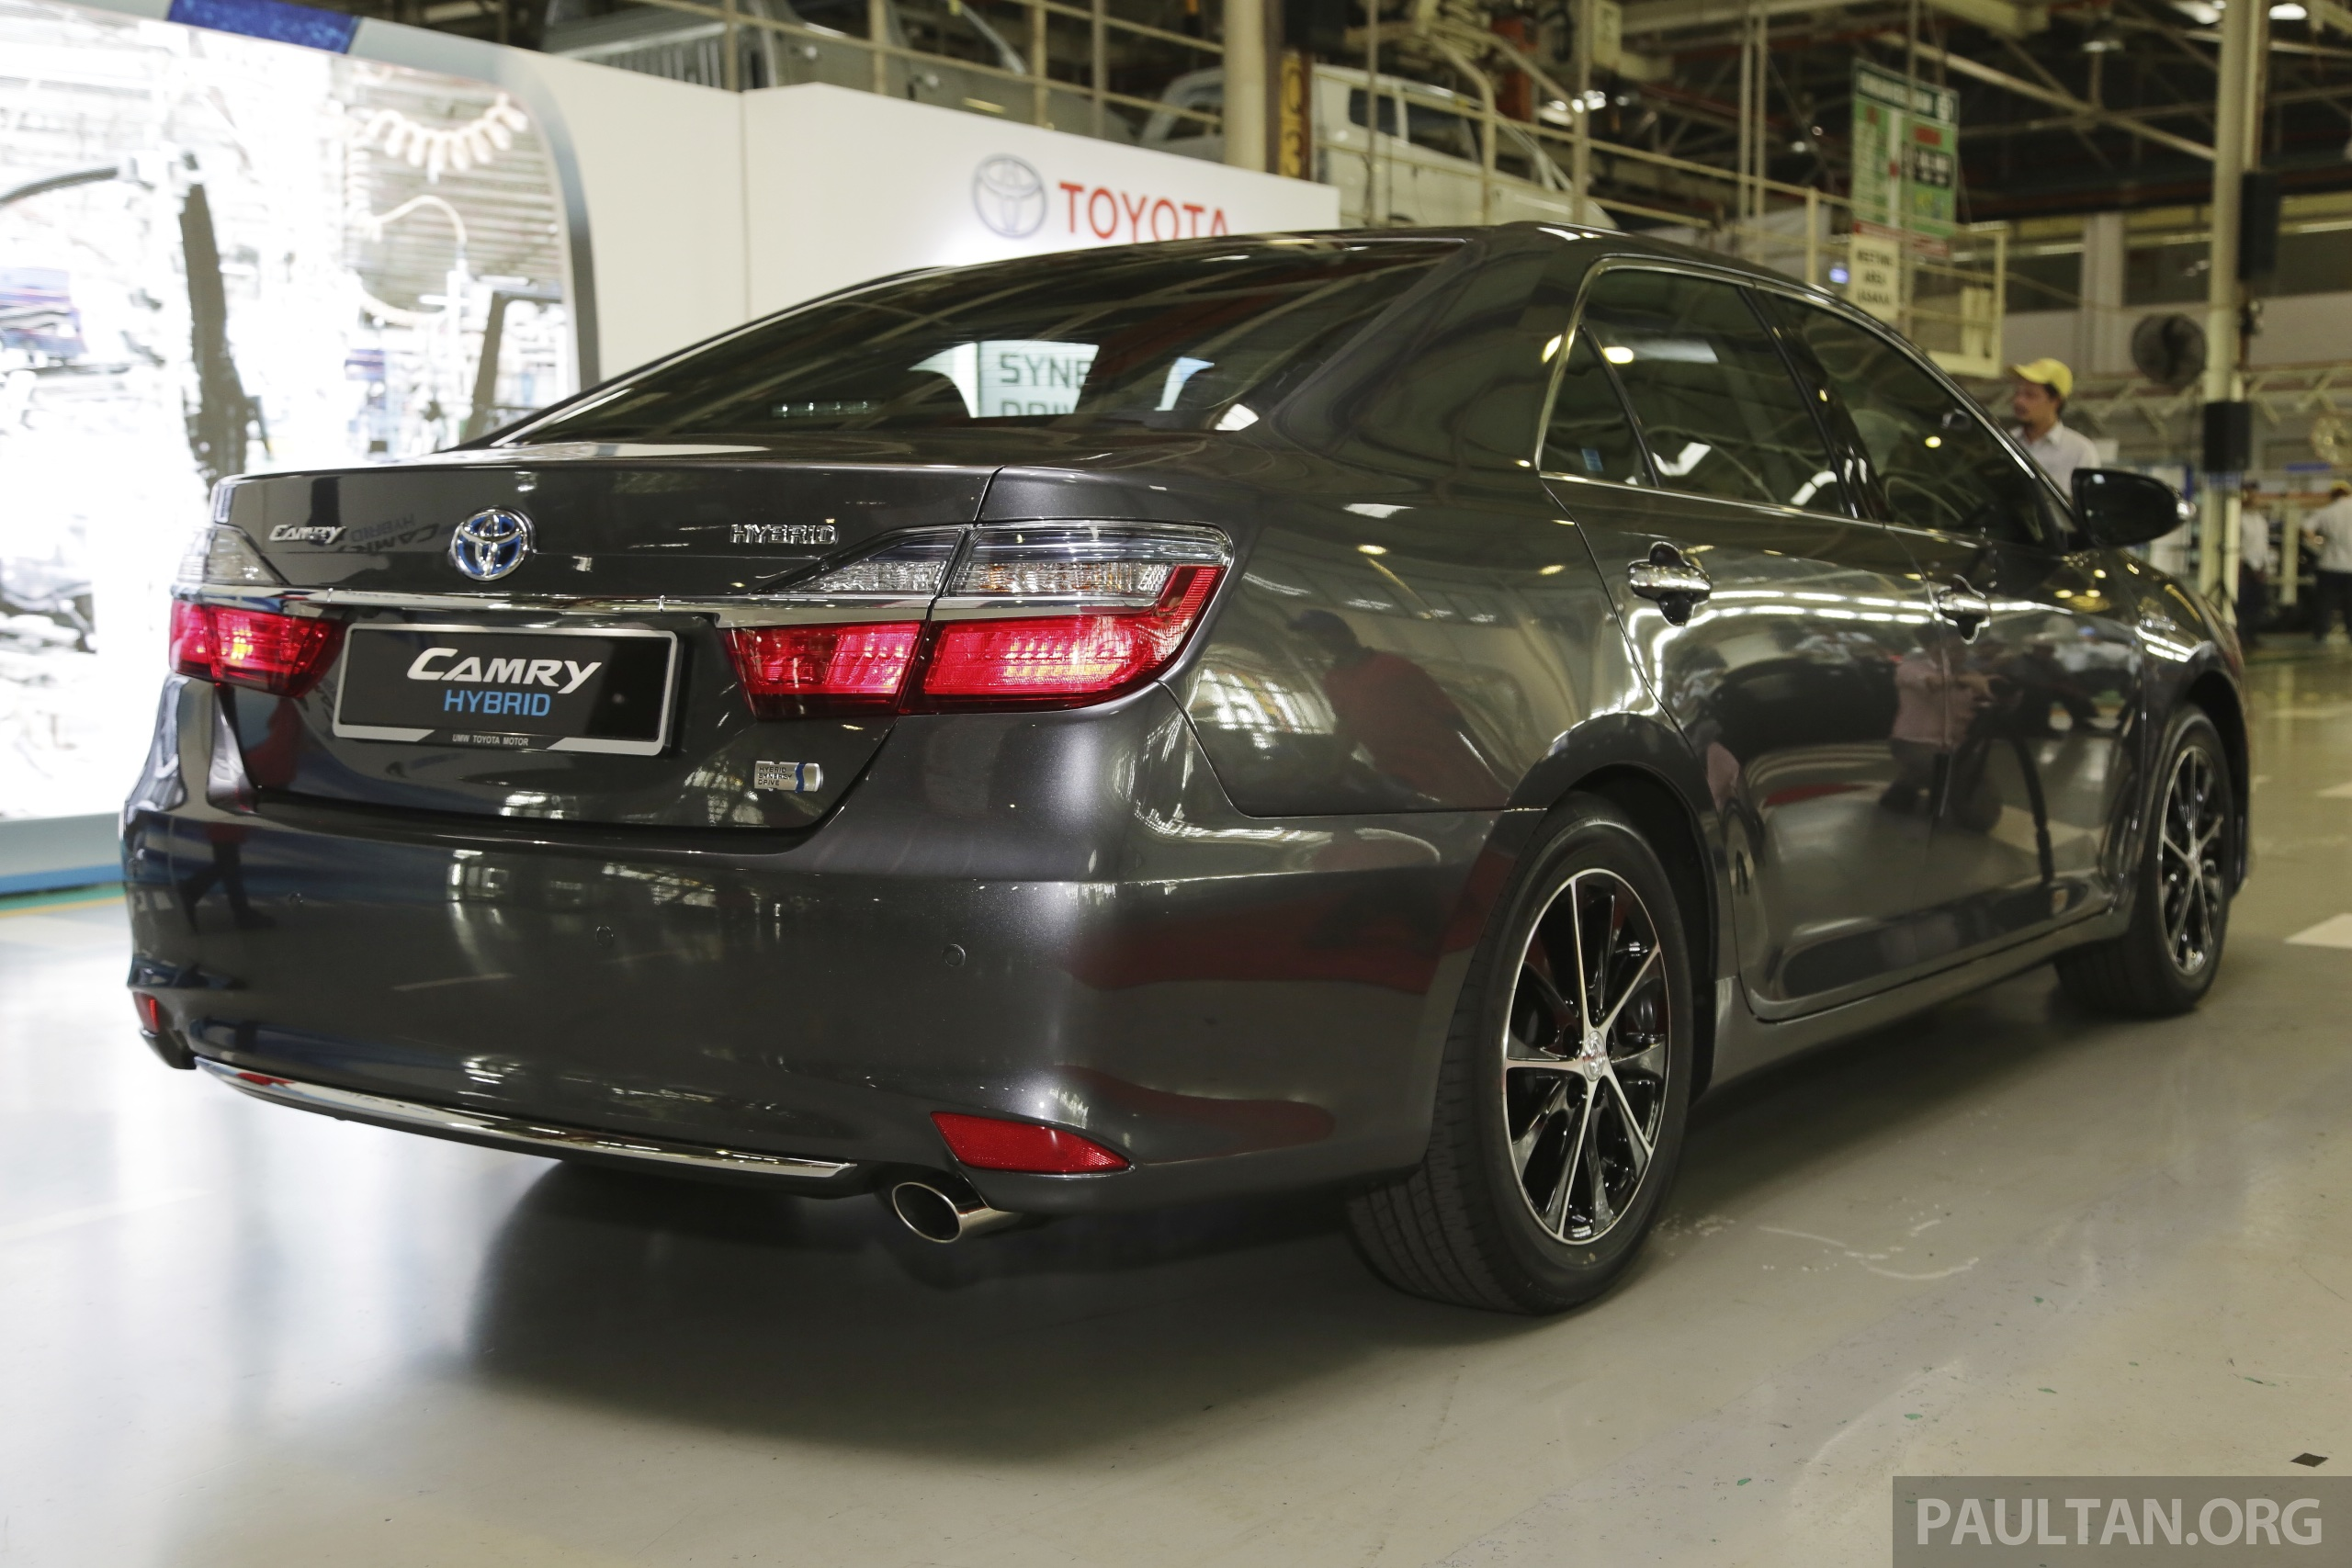 Toyota Camry 2015 >> 2015 Toyota Camry starts M'sian production, plant capable of 7k Camry Hybrids before exemptions ...